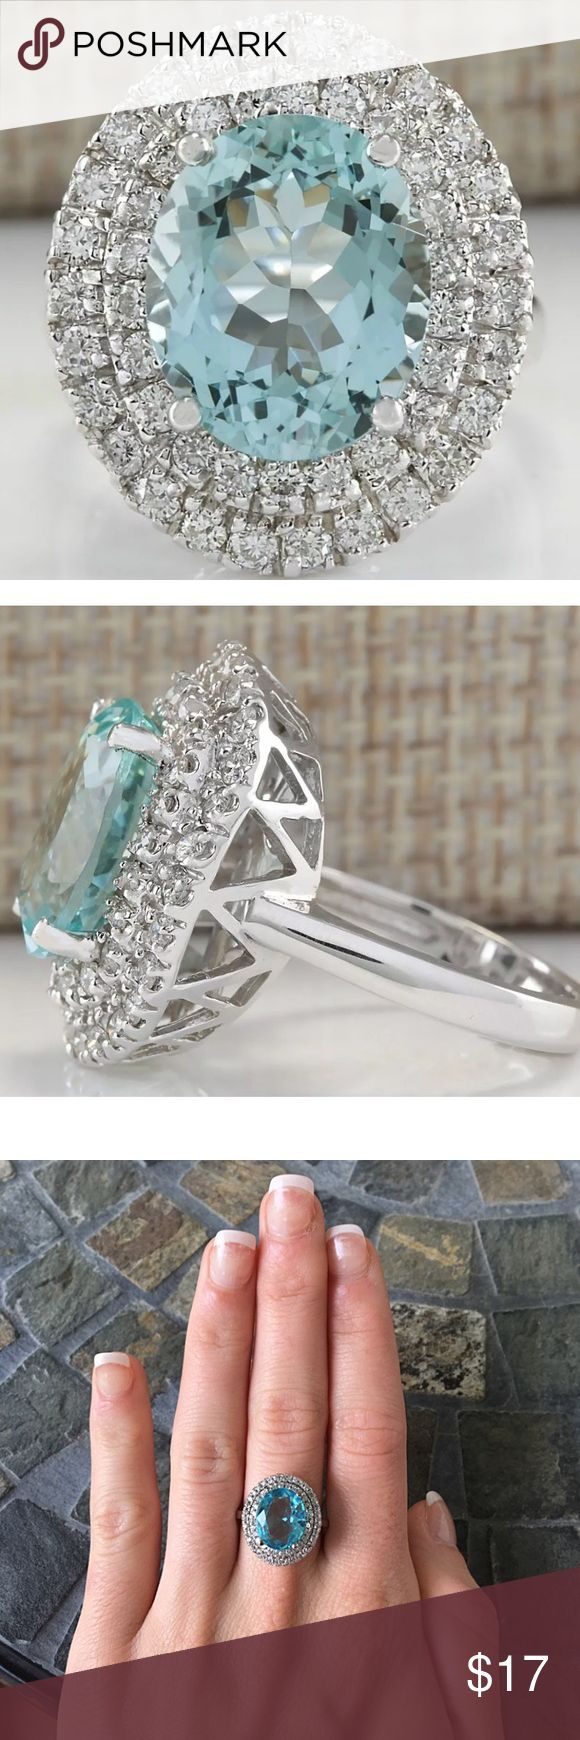 Oval Halo Aqua Gemstone Silver Engagement Ring Amazing cocktail style ring! Huge oval Aqua blue Gemstone in a double halo setting! Silver plated FIRM PRICE/NO TRADES❗️ Jewelry Rings